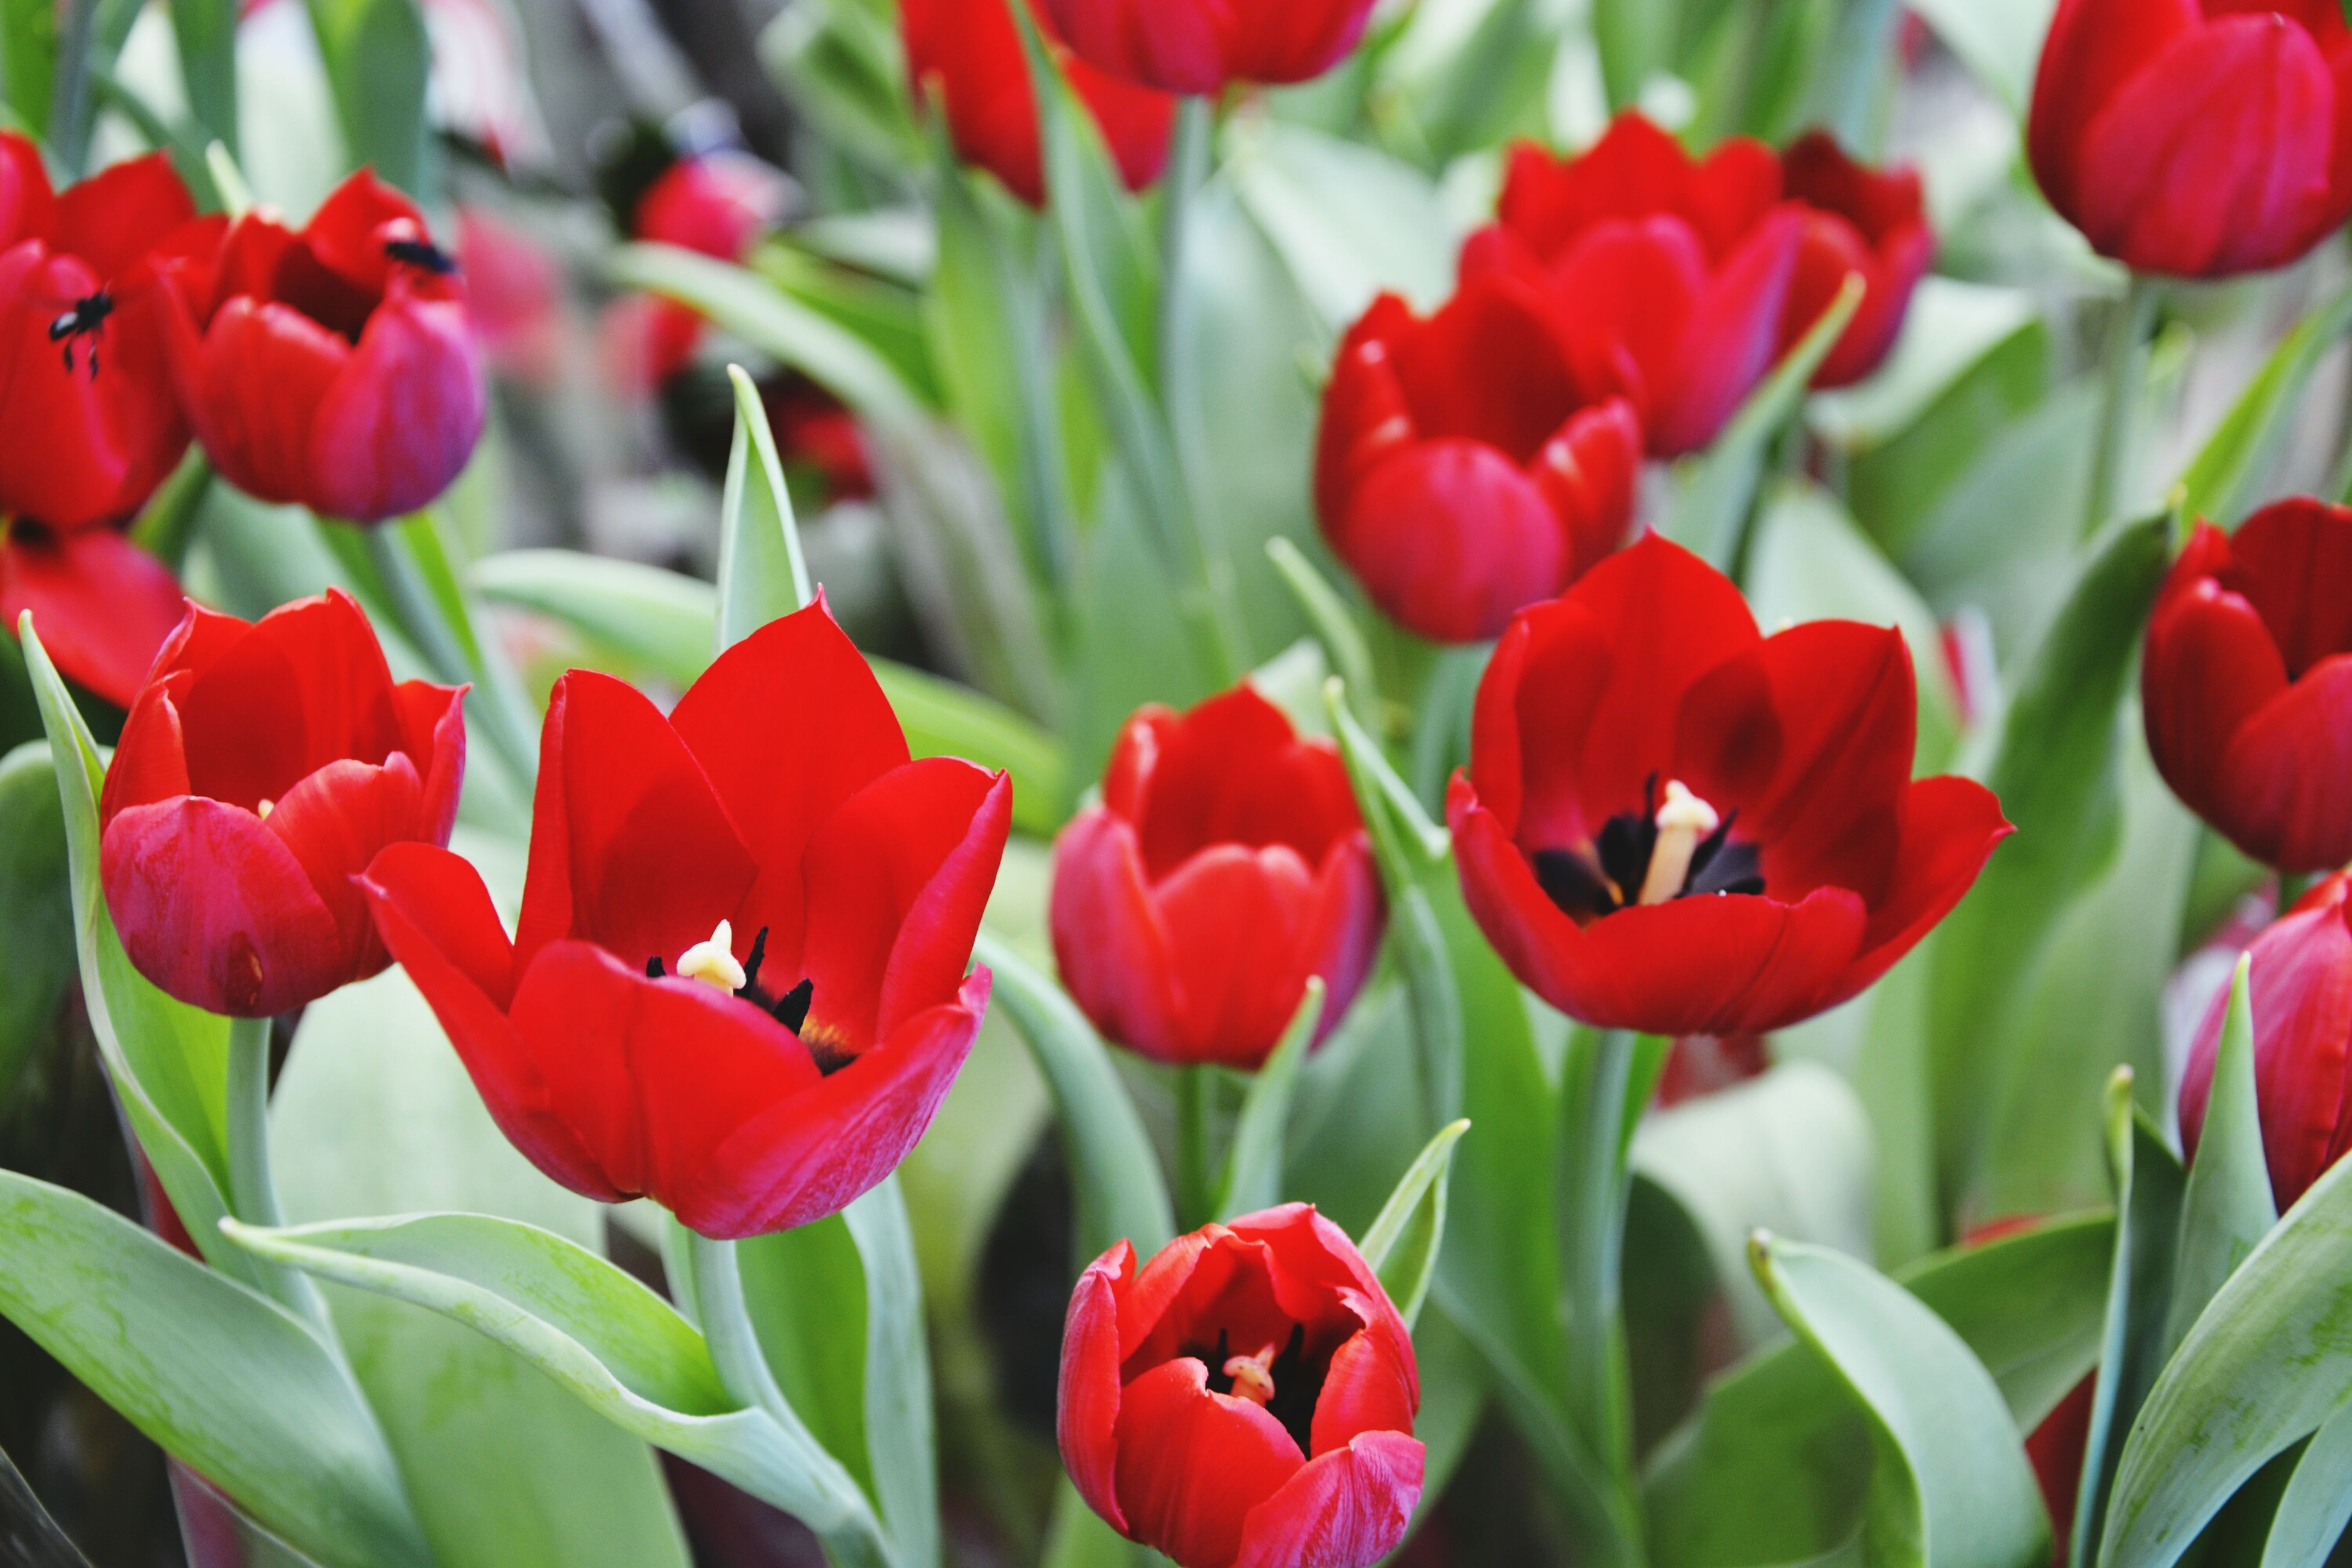 red, flower, freshness, growth, petal, tulip, fragility, beauty in nature, flower head, plant, nature, leaf, blooming, close-up, stem, abundance, day, no people, focus on foreground, green color, outdoors, in bloom, bud, blossom, botany, selective focus, growing, backgrounds, green